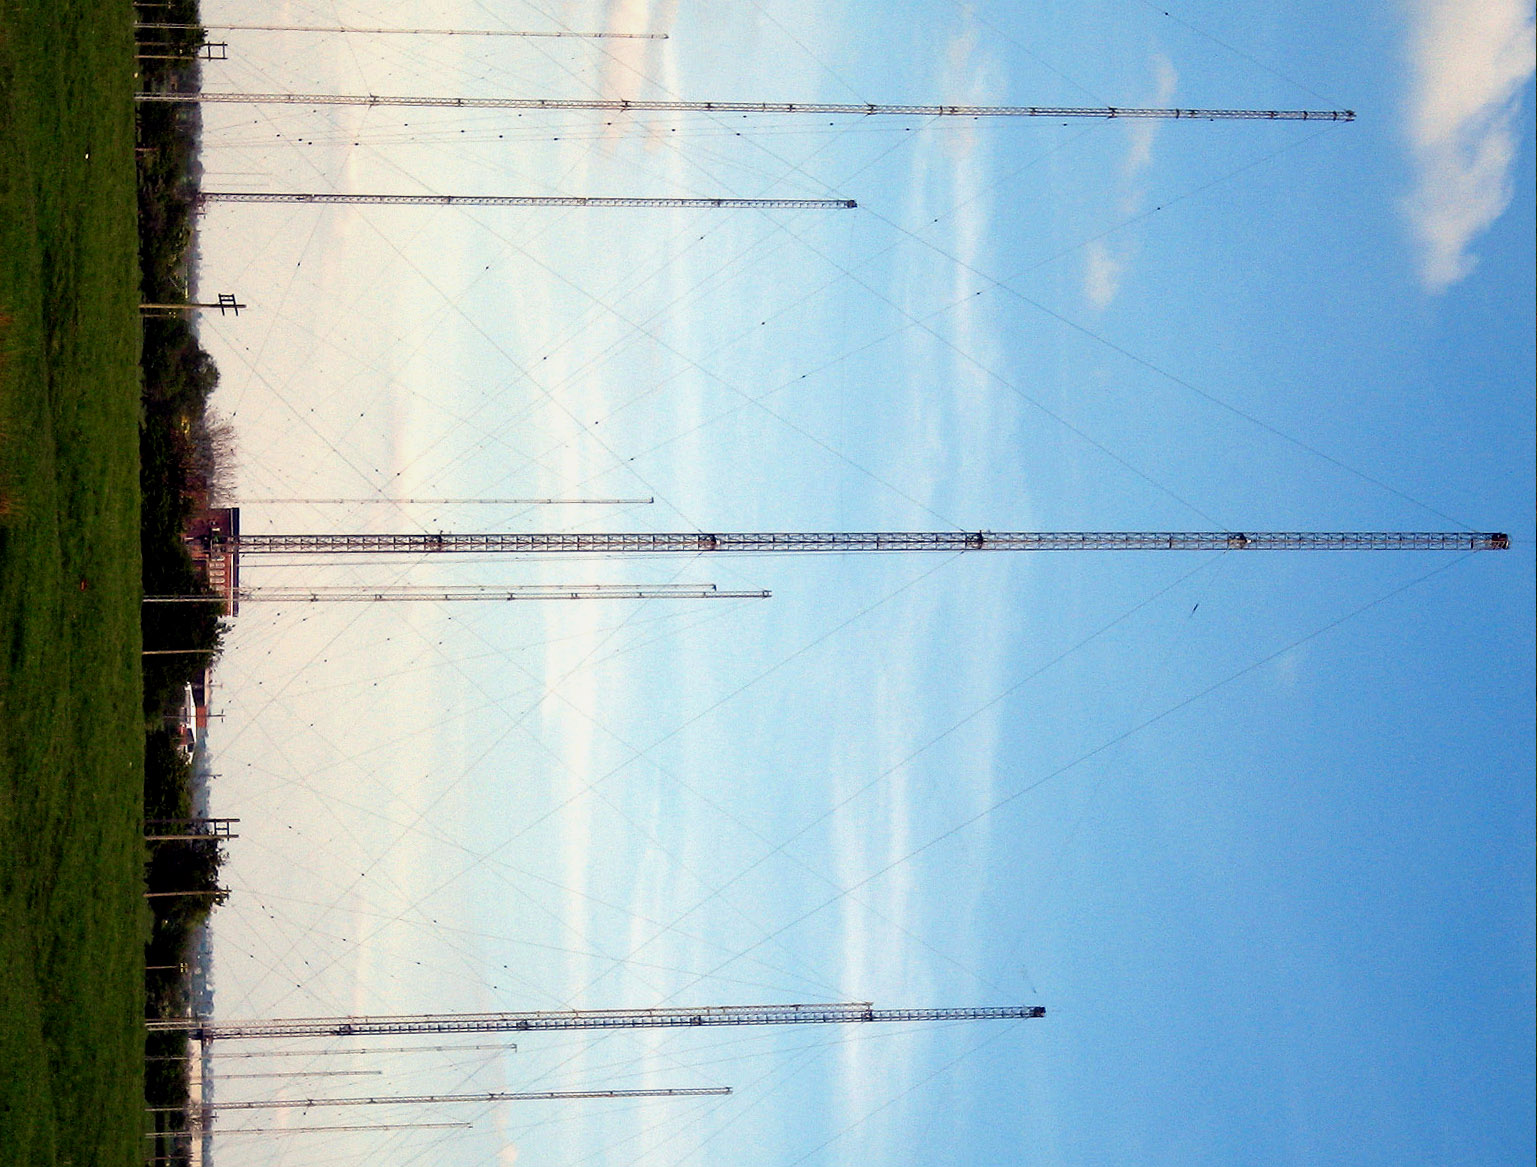 Radio masts and towers - Wikipedia